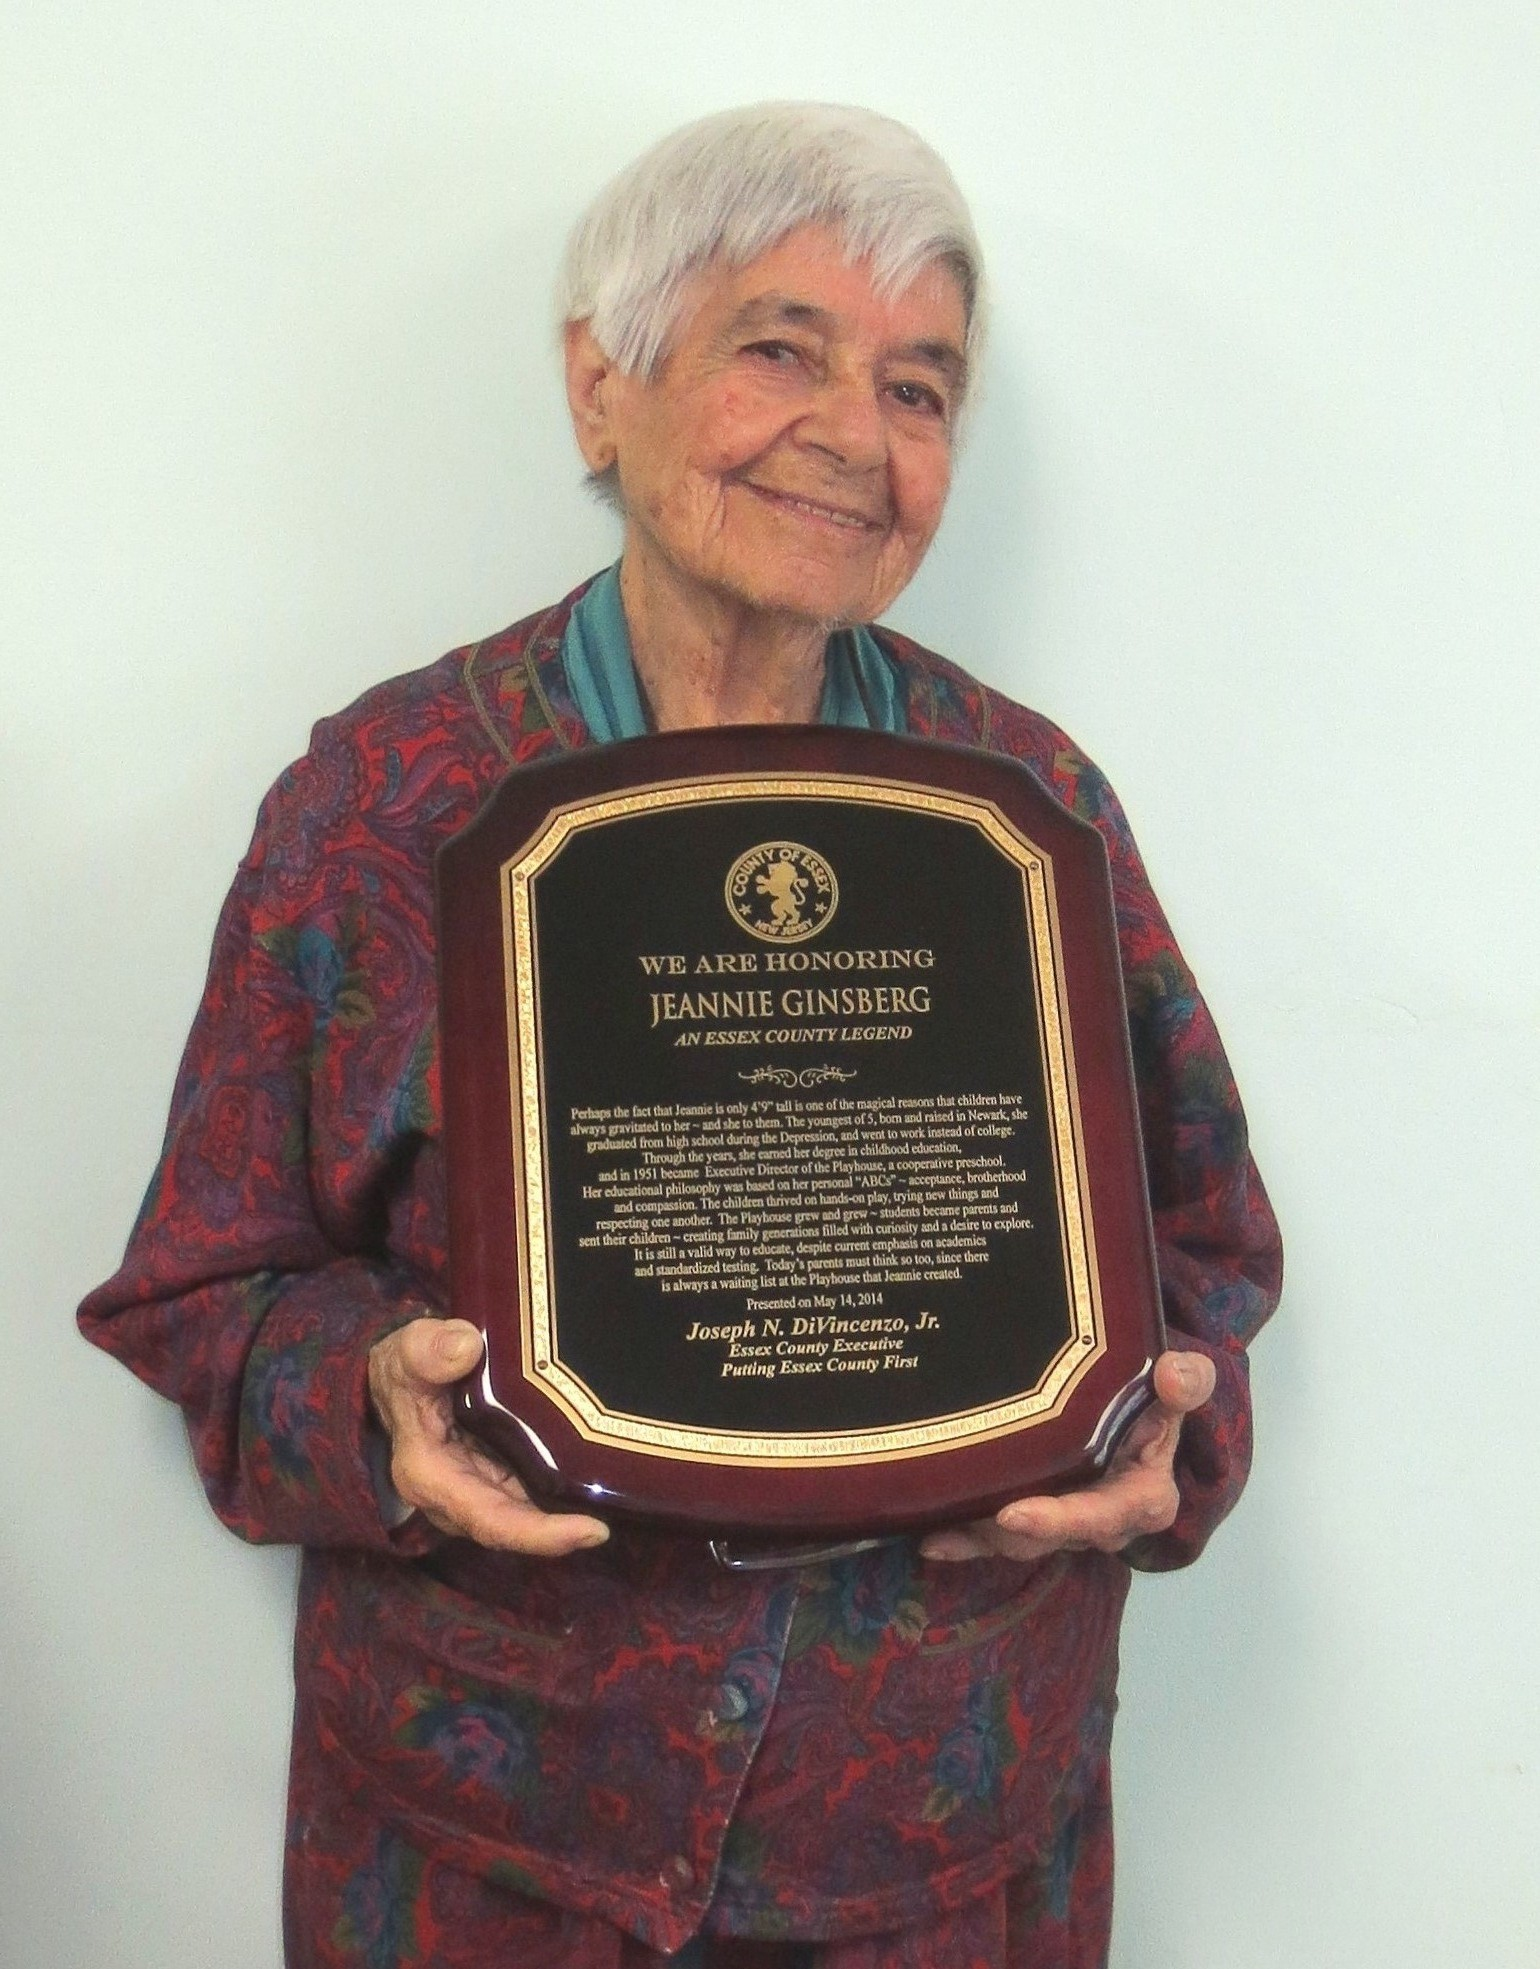 83bae8204bd46d7cb711_Jeannie_Ginsberg_with_plaque2.jpg